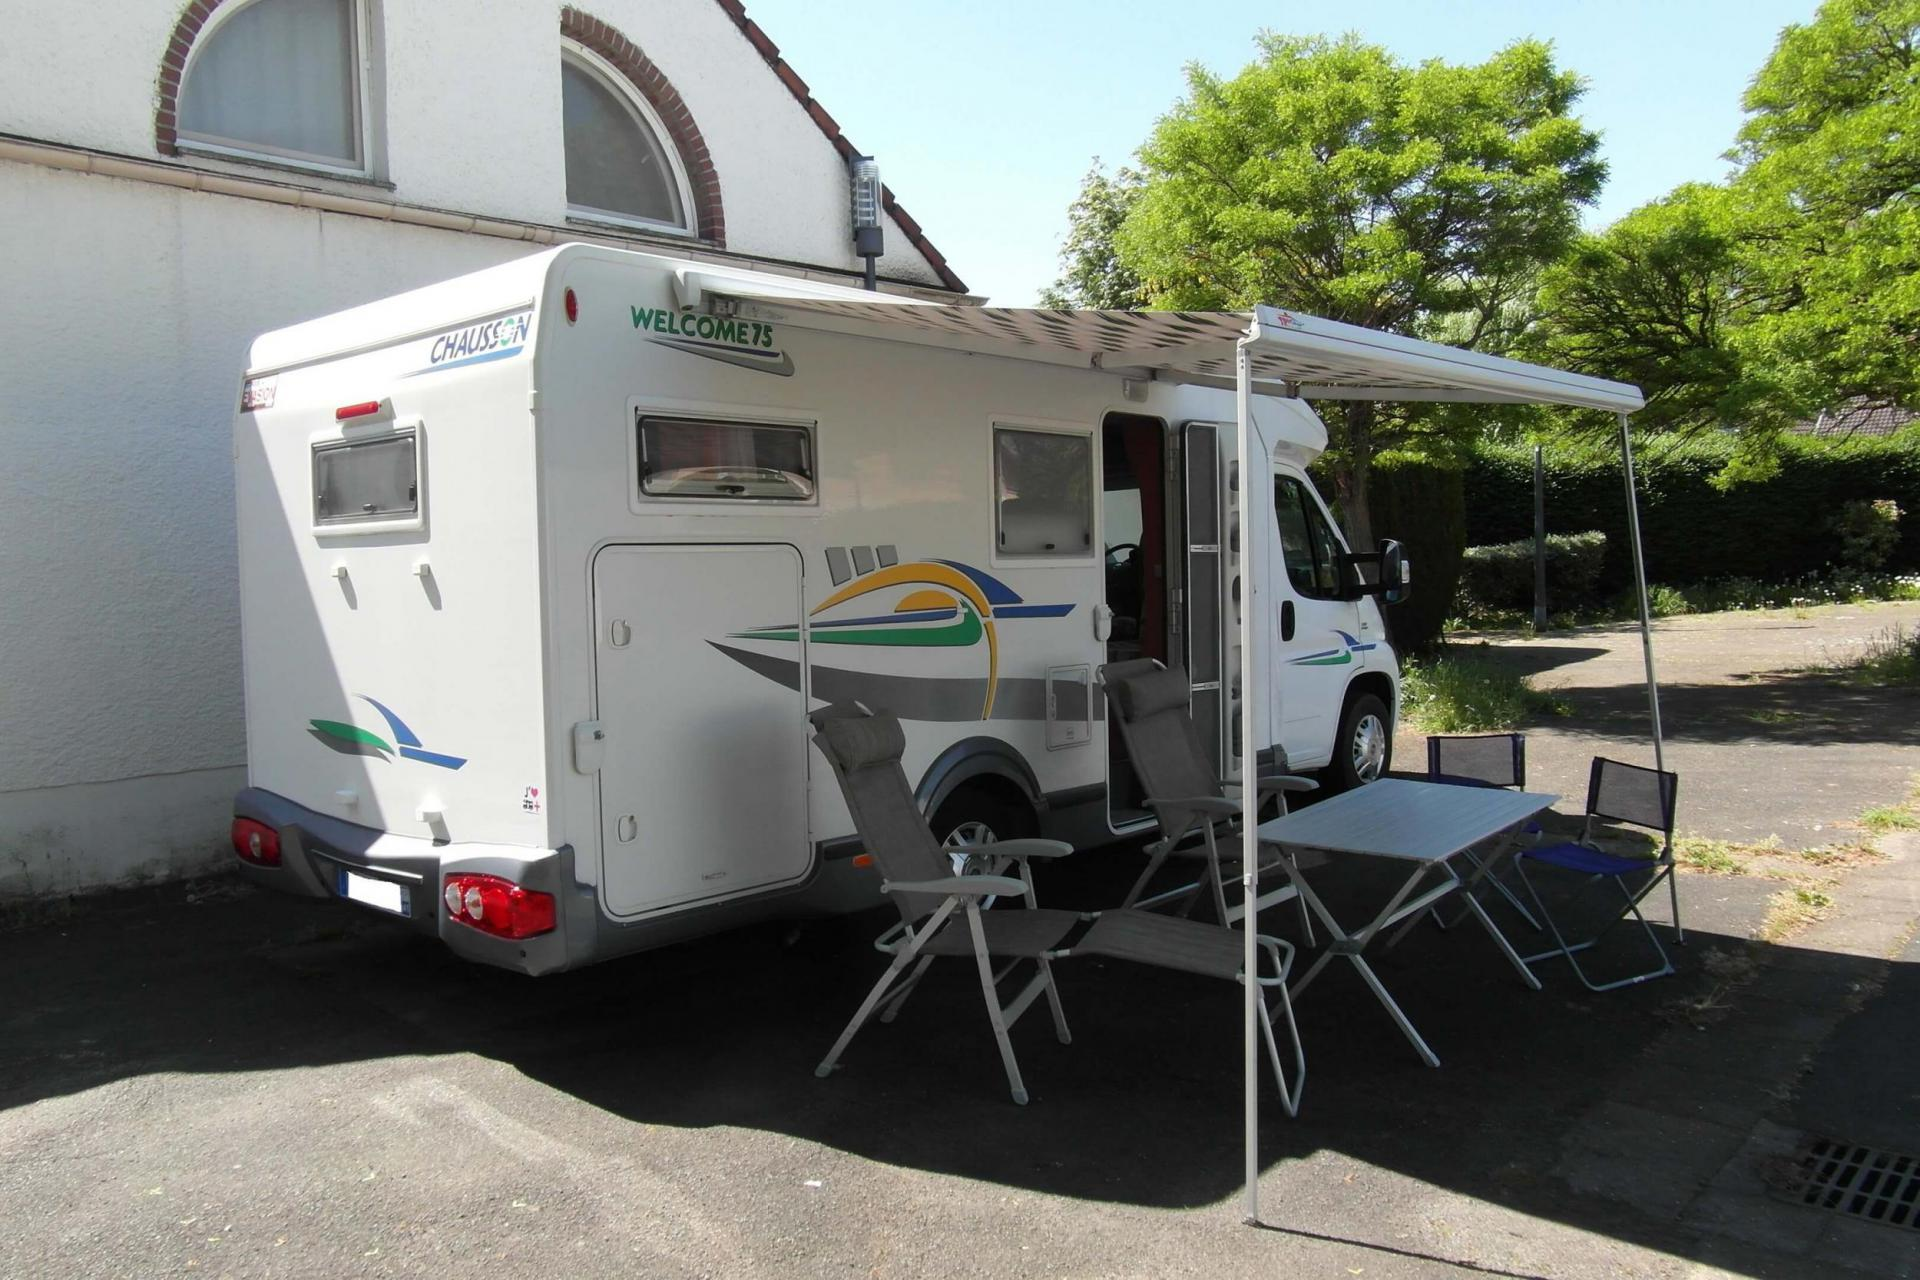 camping-car CHAUSSON WELCOME 75